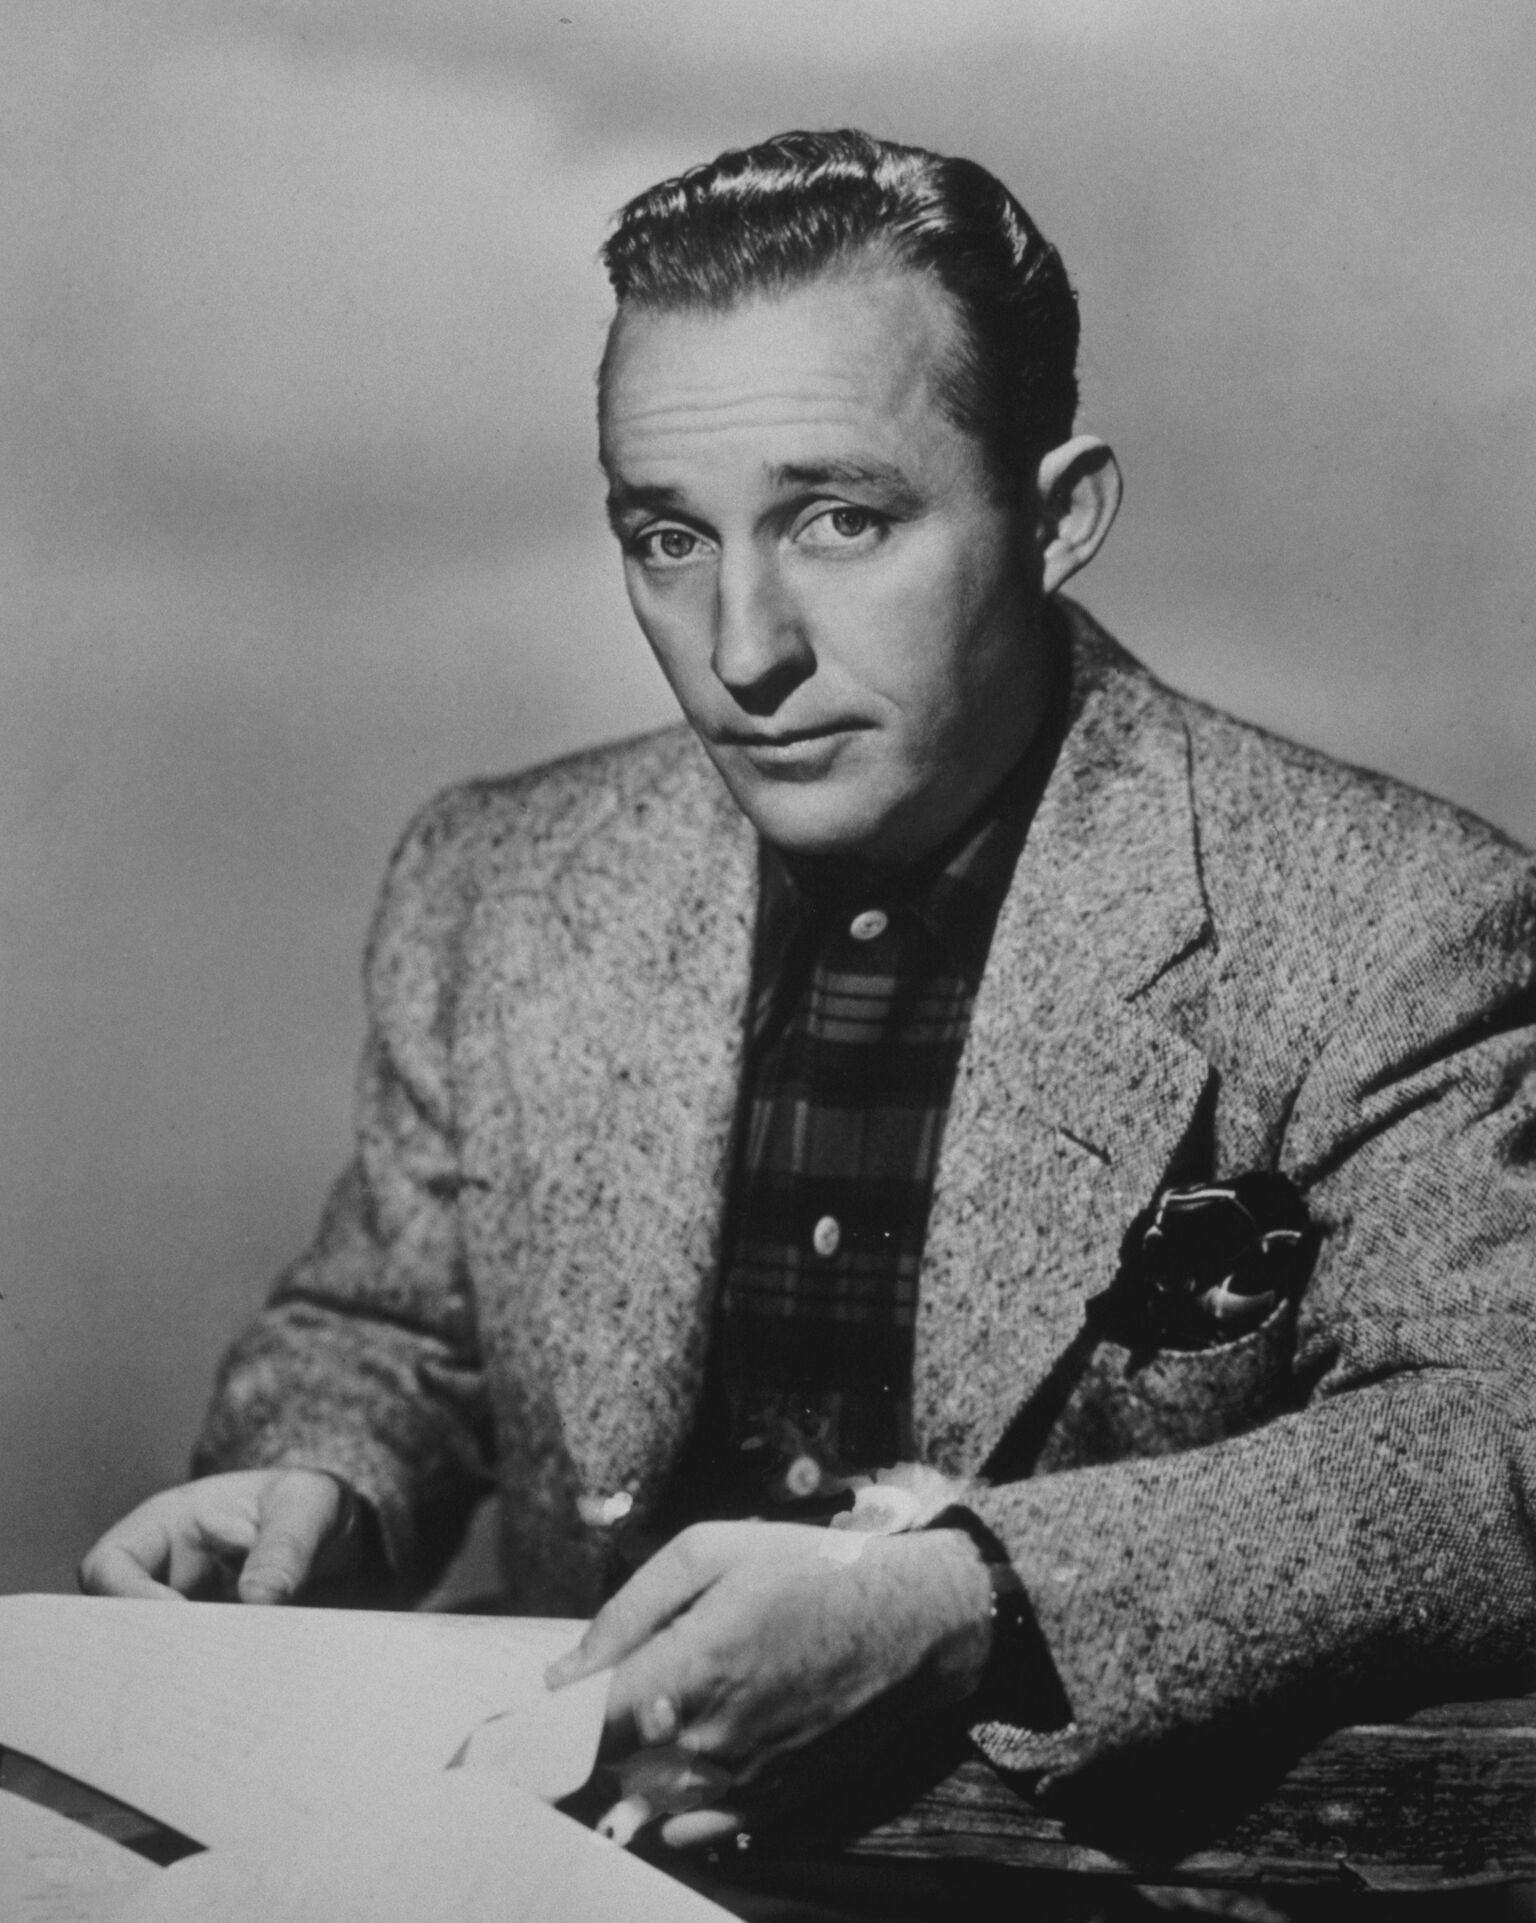 Headshot of American entertainer Bing Crosby | Getty Images / Global Images Ukraine